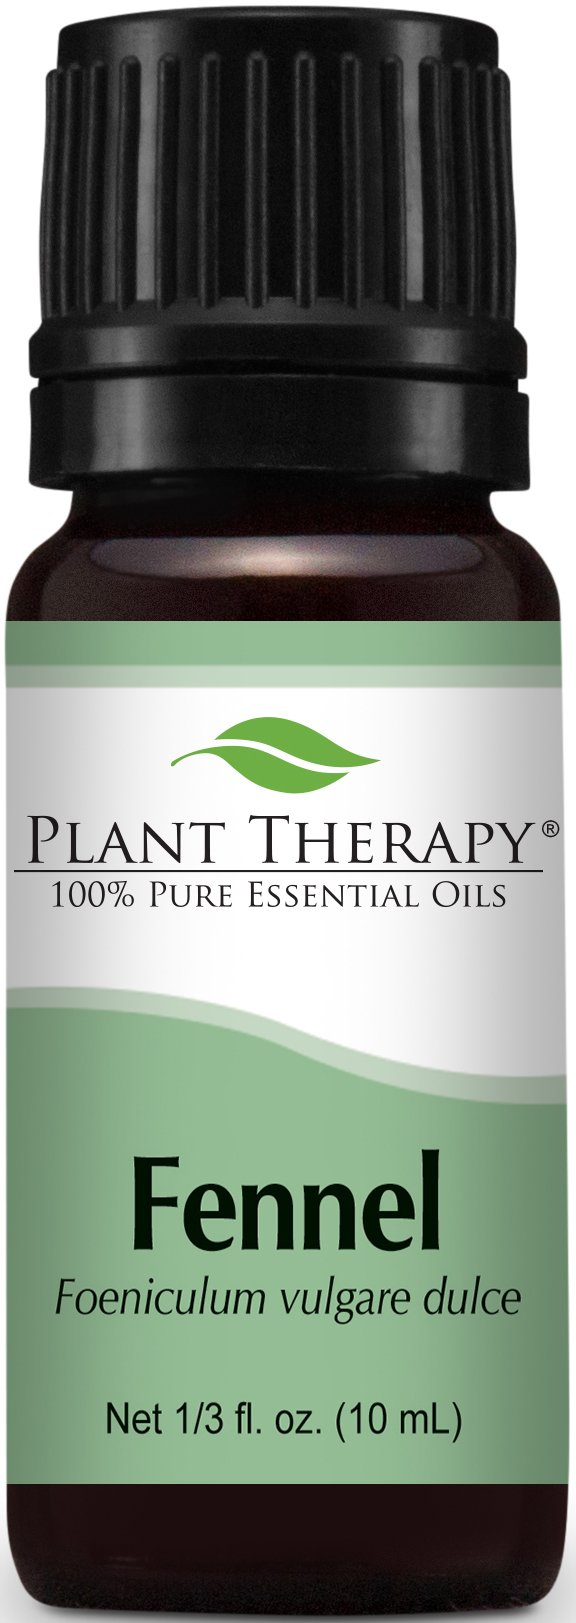 Plant Therapy Fennel (sweet) Essential Oil. 100% Pure, Undiluted, Therapeutic Grade. 10 ml (1/3 oz).